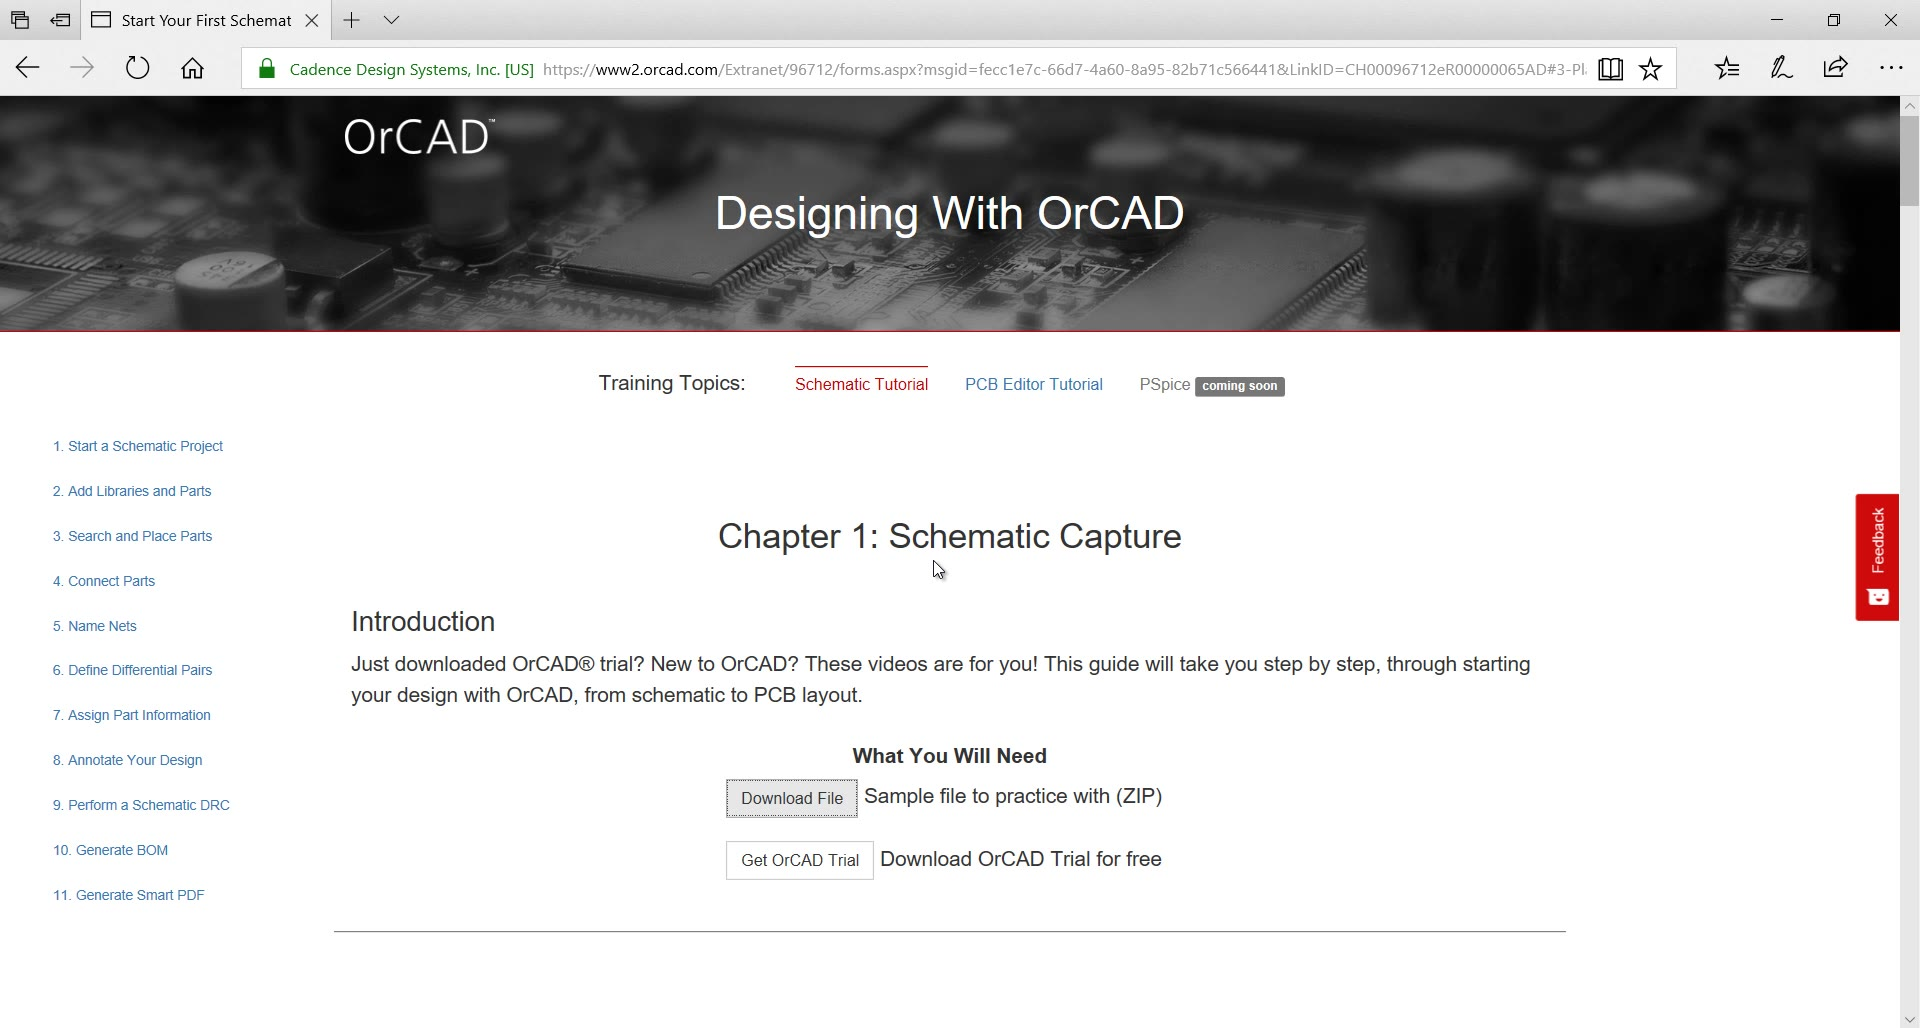 Start Your First Schematic Design In Orcad Capture Freeware Electrical Block Diagram Software Page 1 0 Using This Tutorial